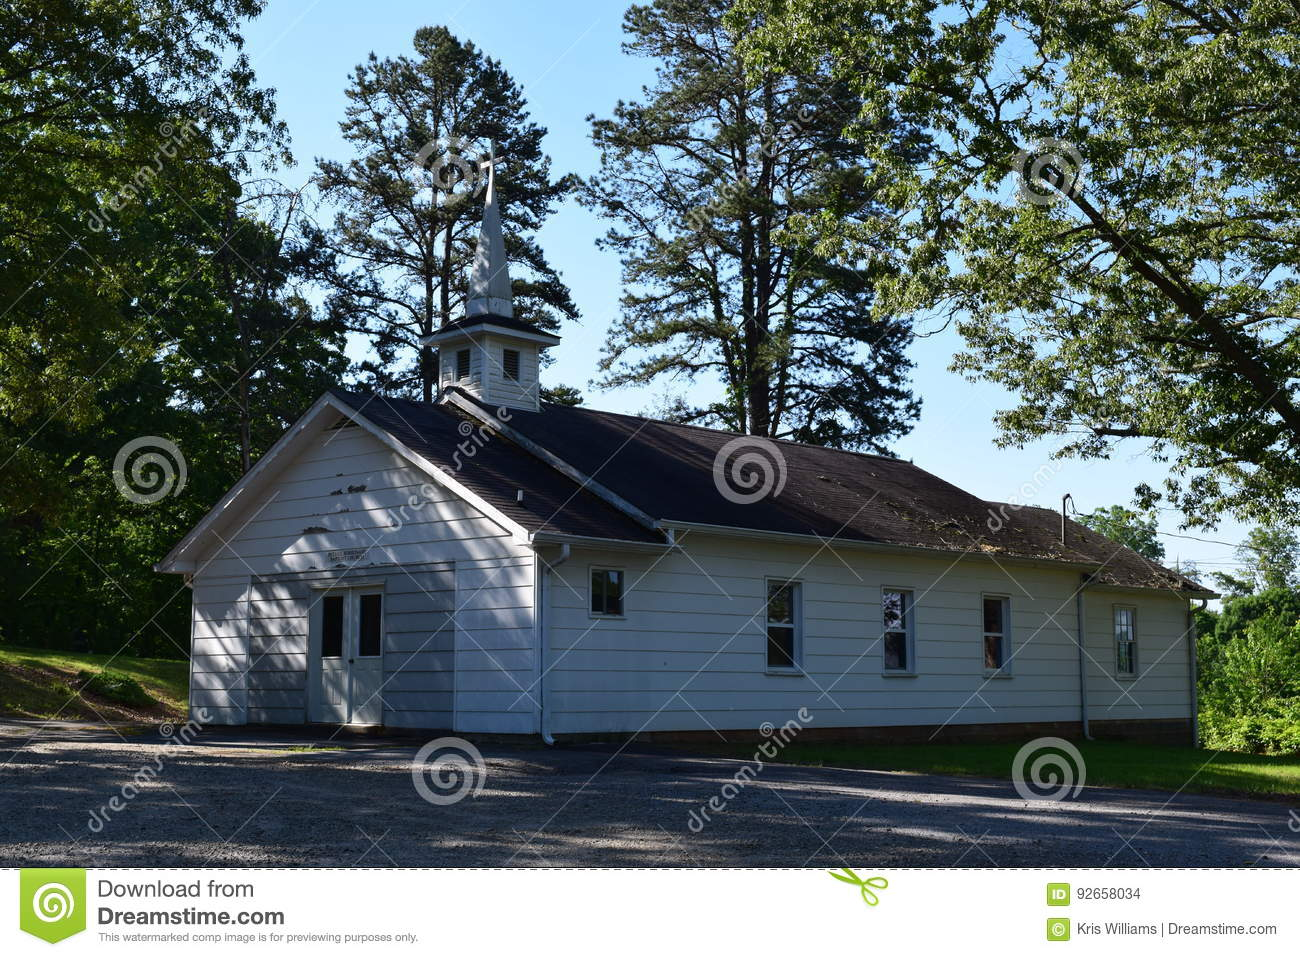 Western NC Mountain country church